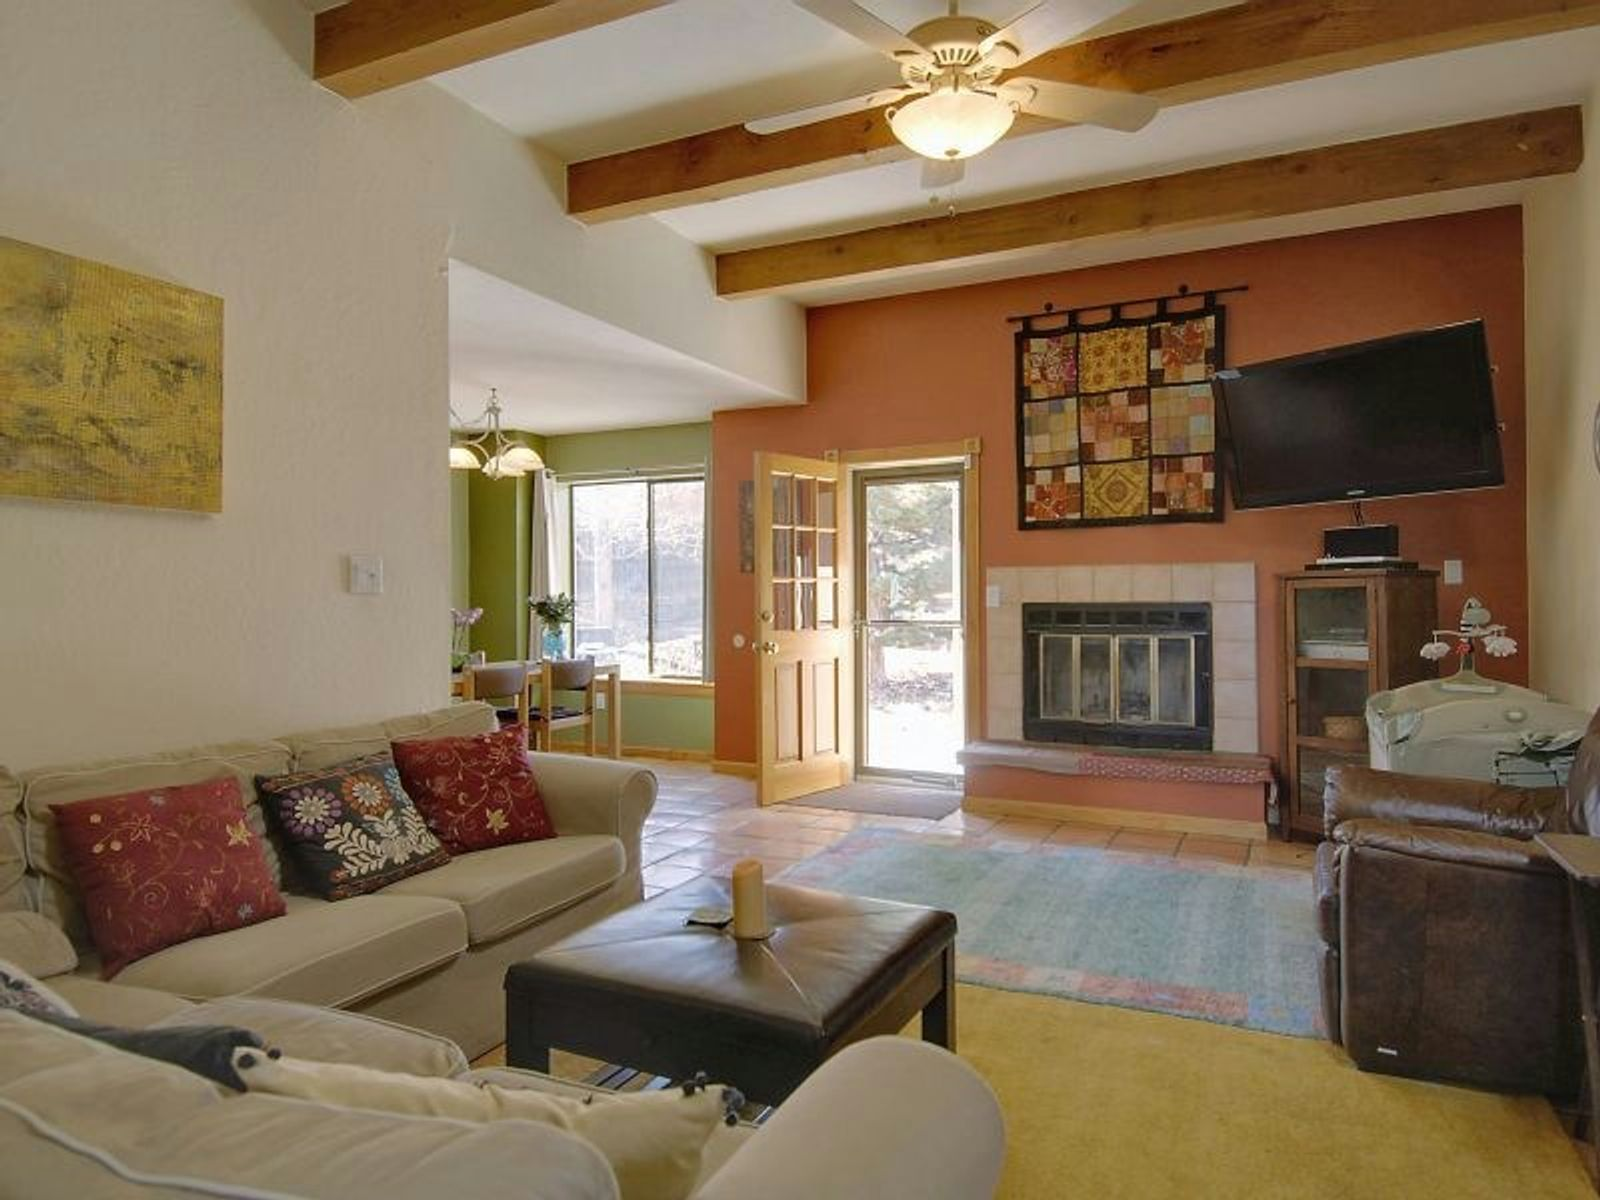 2722  La Silla Dorada, Santa Fe NM Single Family Home - Santa Fe Real Estate